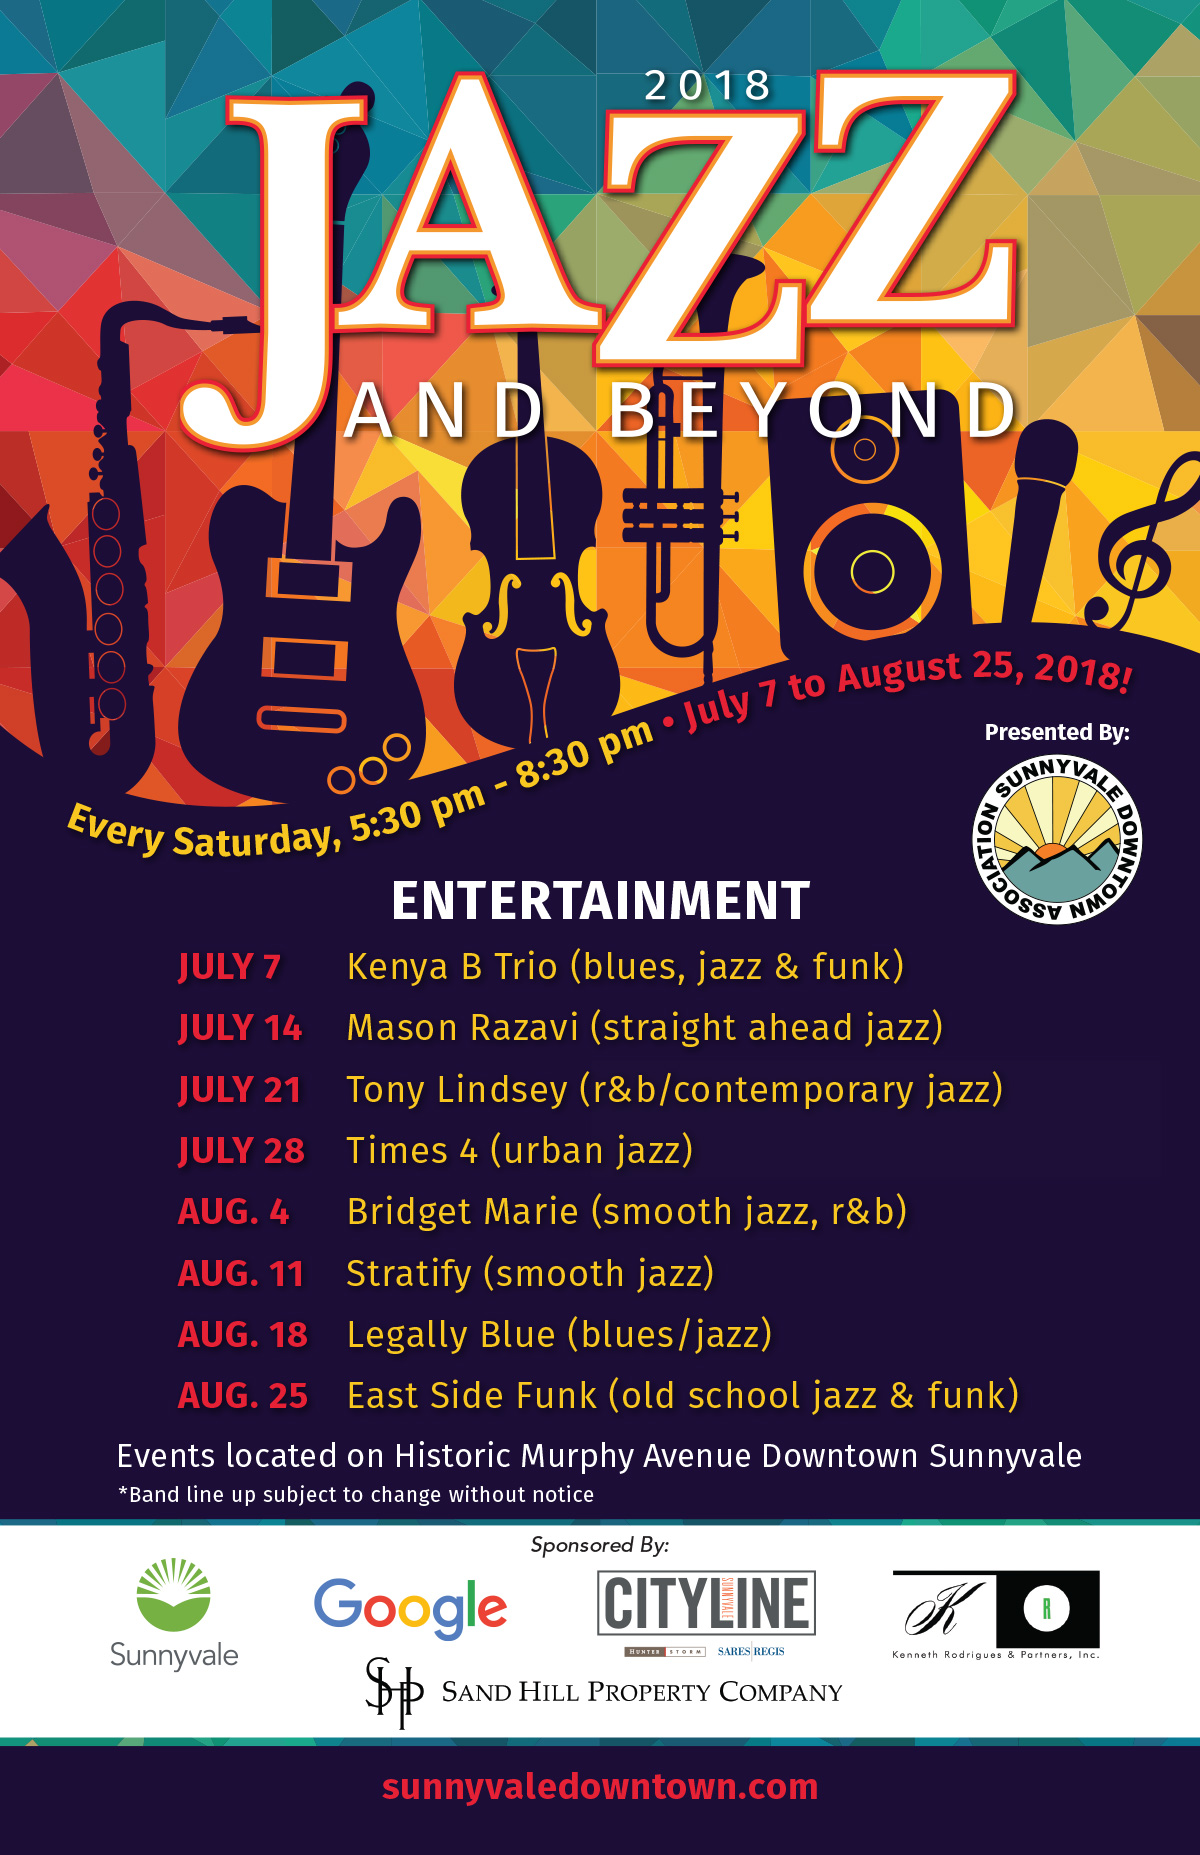 Sunnyvale Downtown Jazz And Beyond Poster